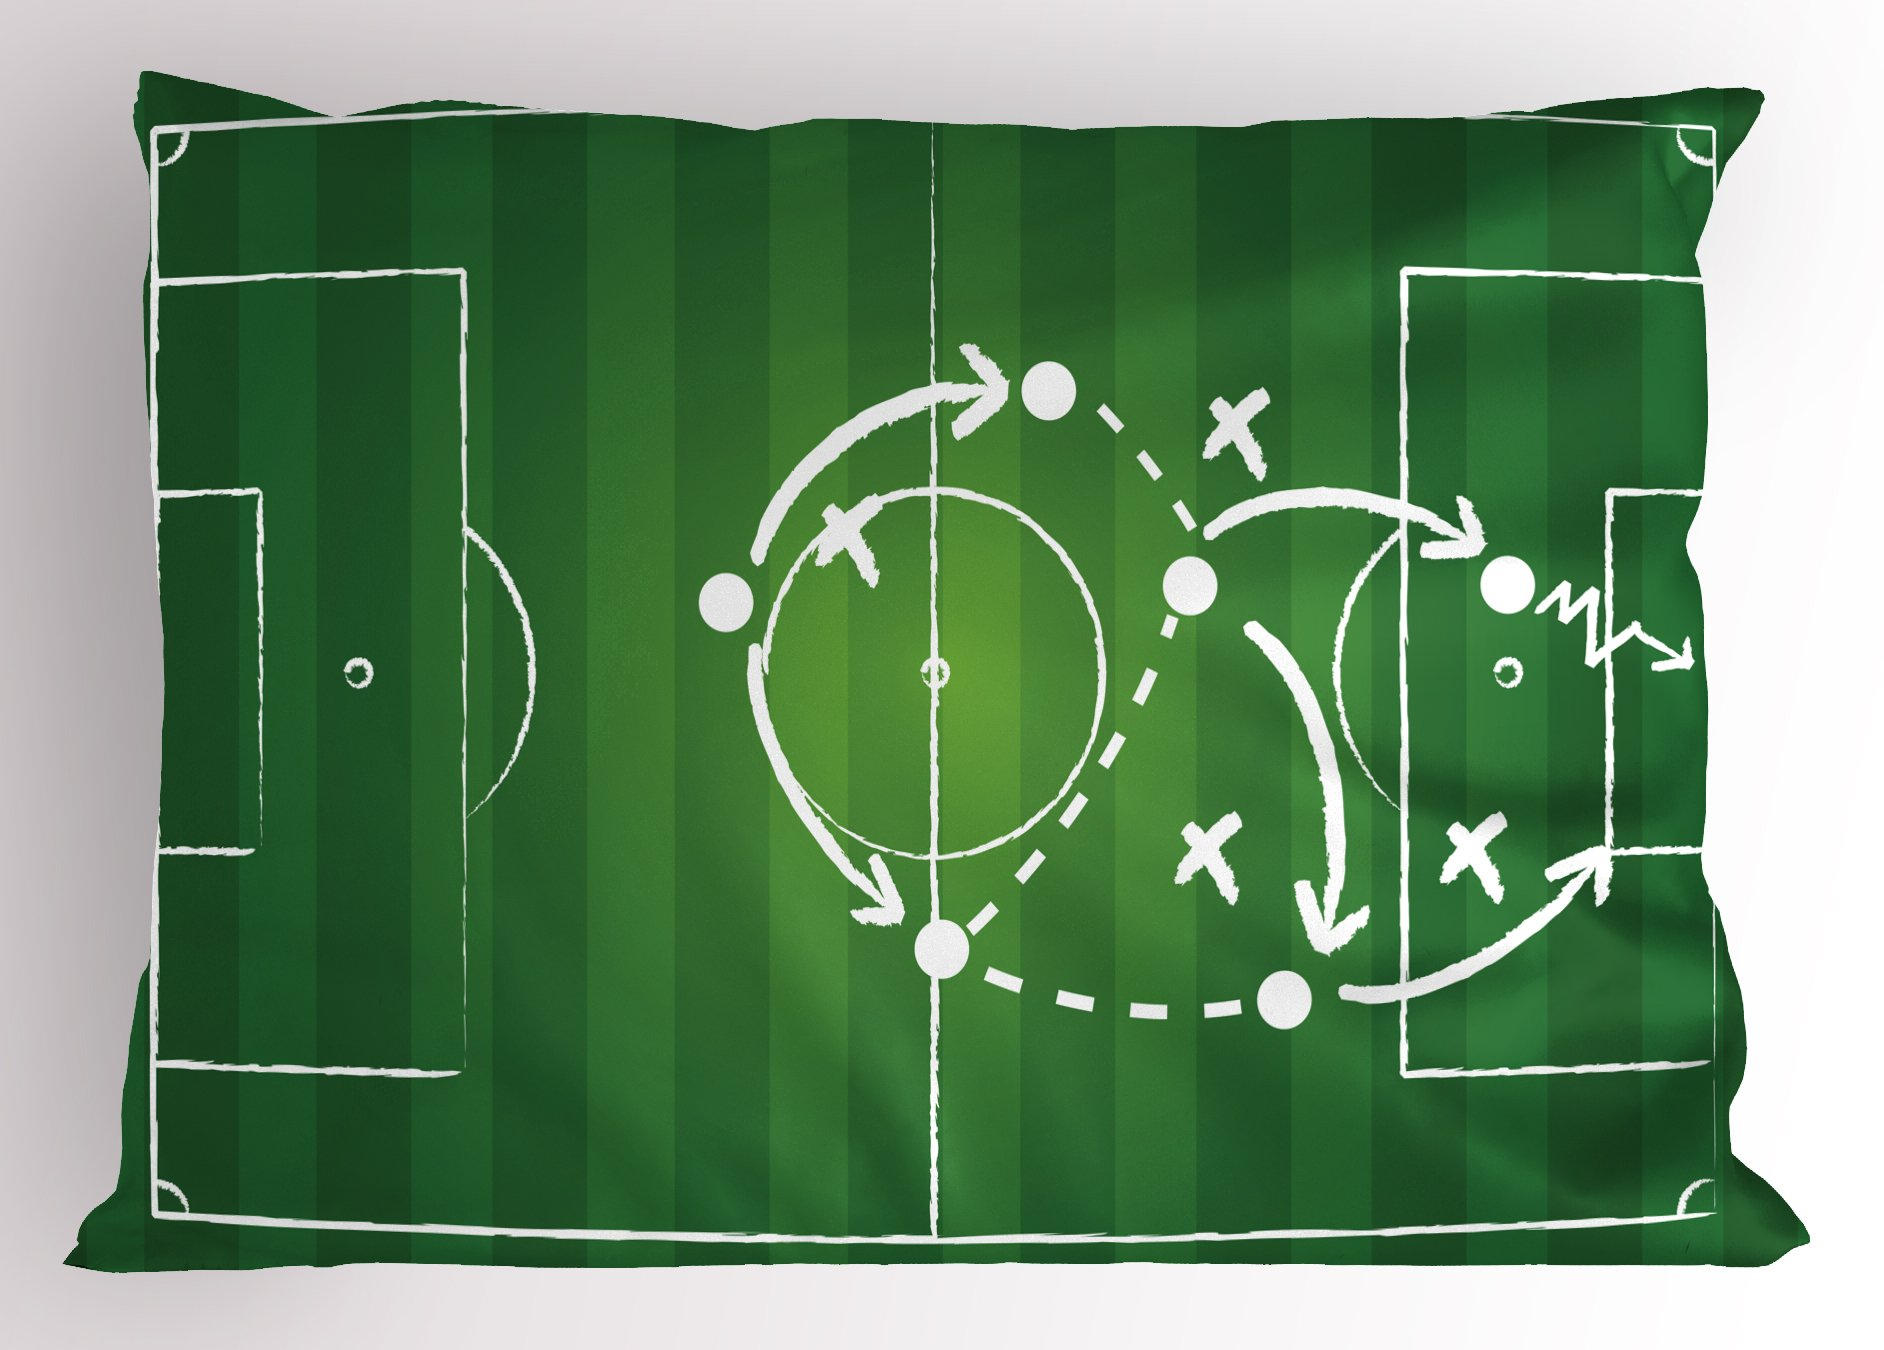 Ambesonne Soccer Pillow Sham, Game Strategy Passing Marking Dribbling Towards Goal Winning Tactics Total Football, Decorative Standard Size Printed Pillowcase, 26 X 20 inches, Green White